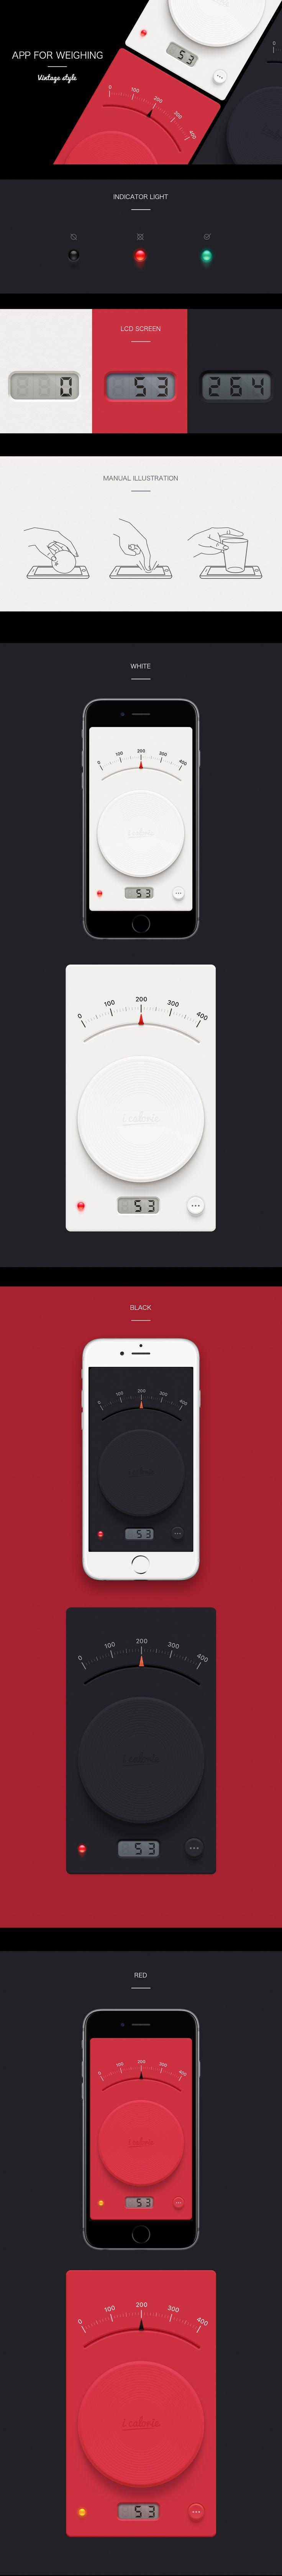 App for weighing